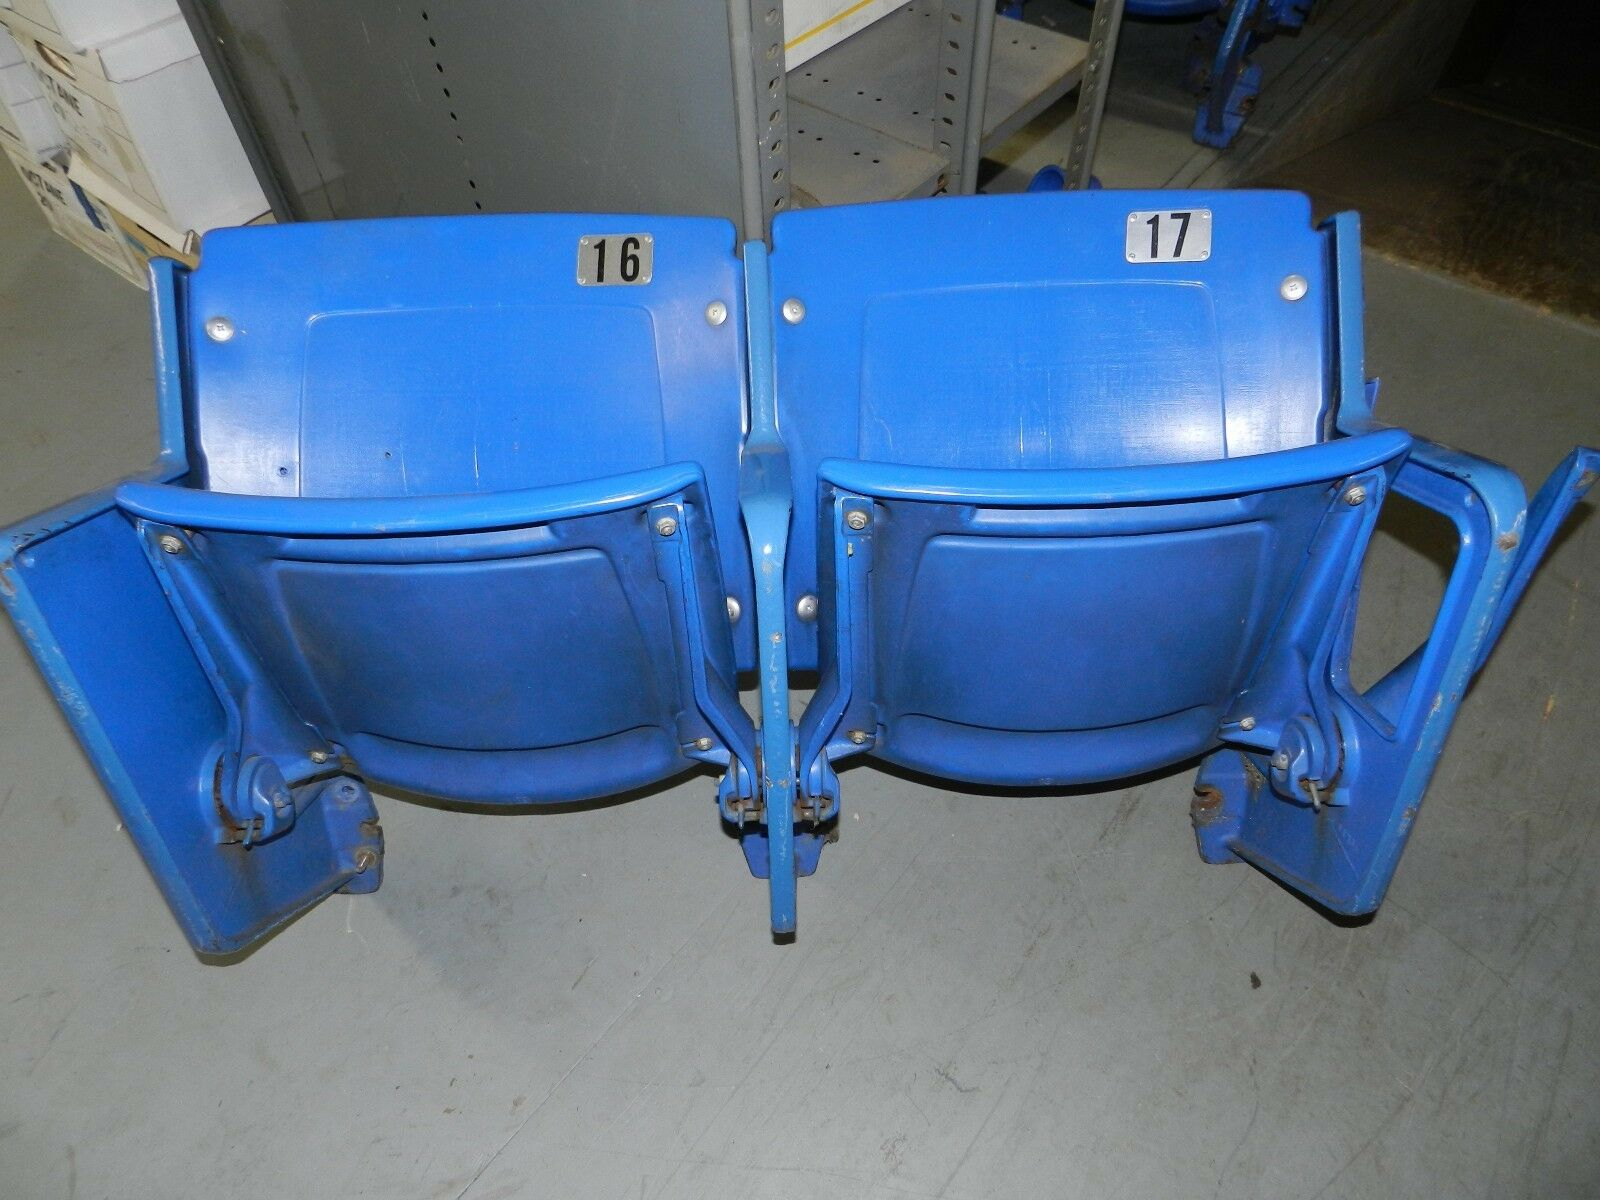 Minnesota Vikings Twins Hubert Humphrey Metrodome Stadium Game Used Seats 16-17